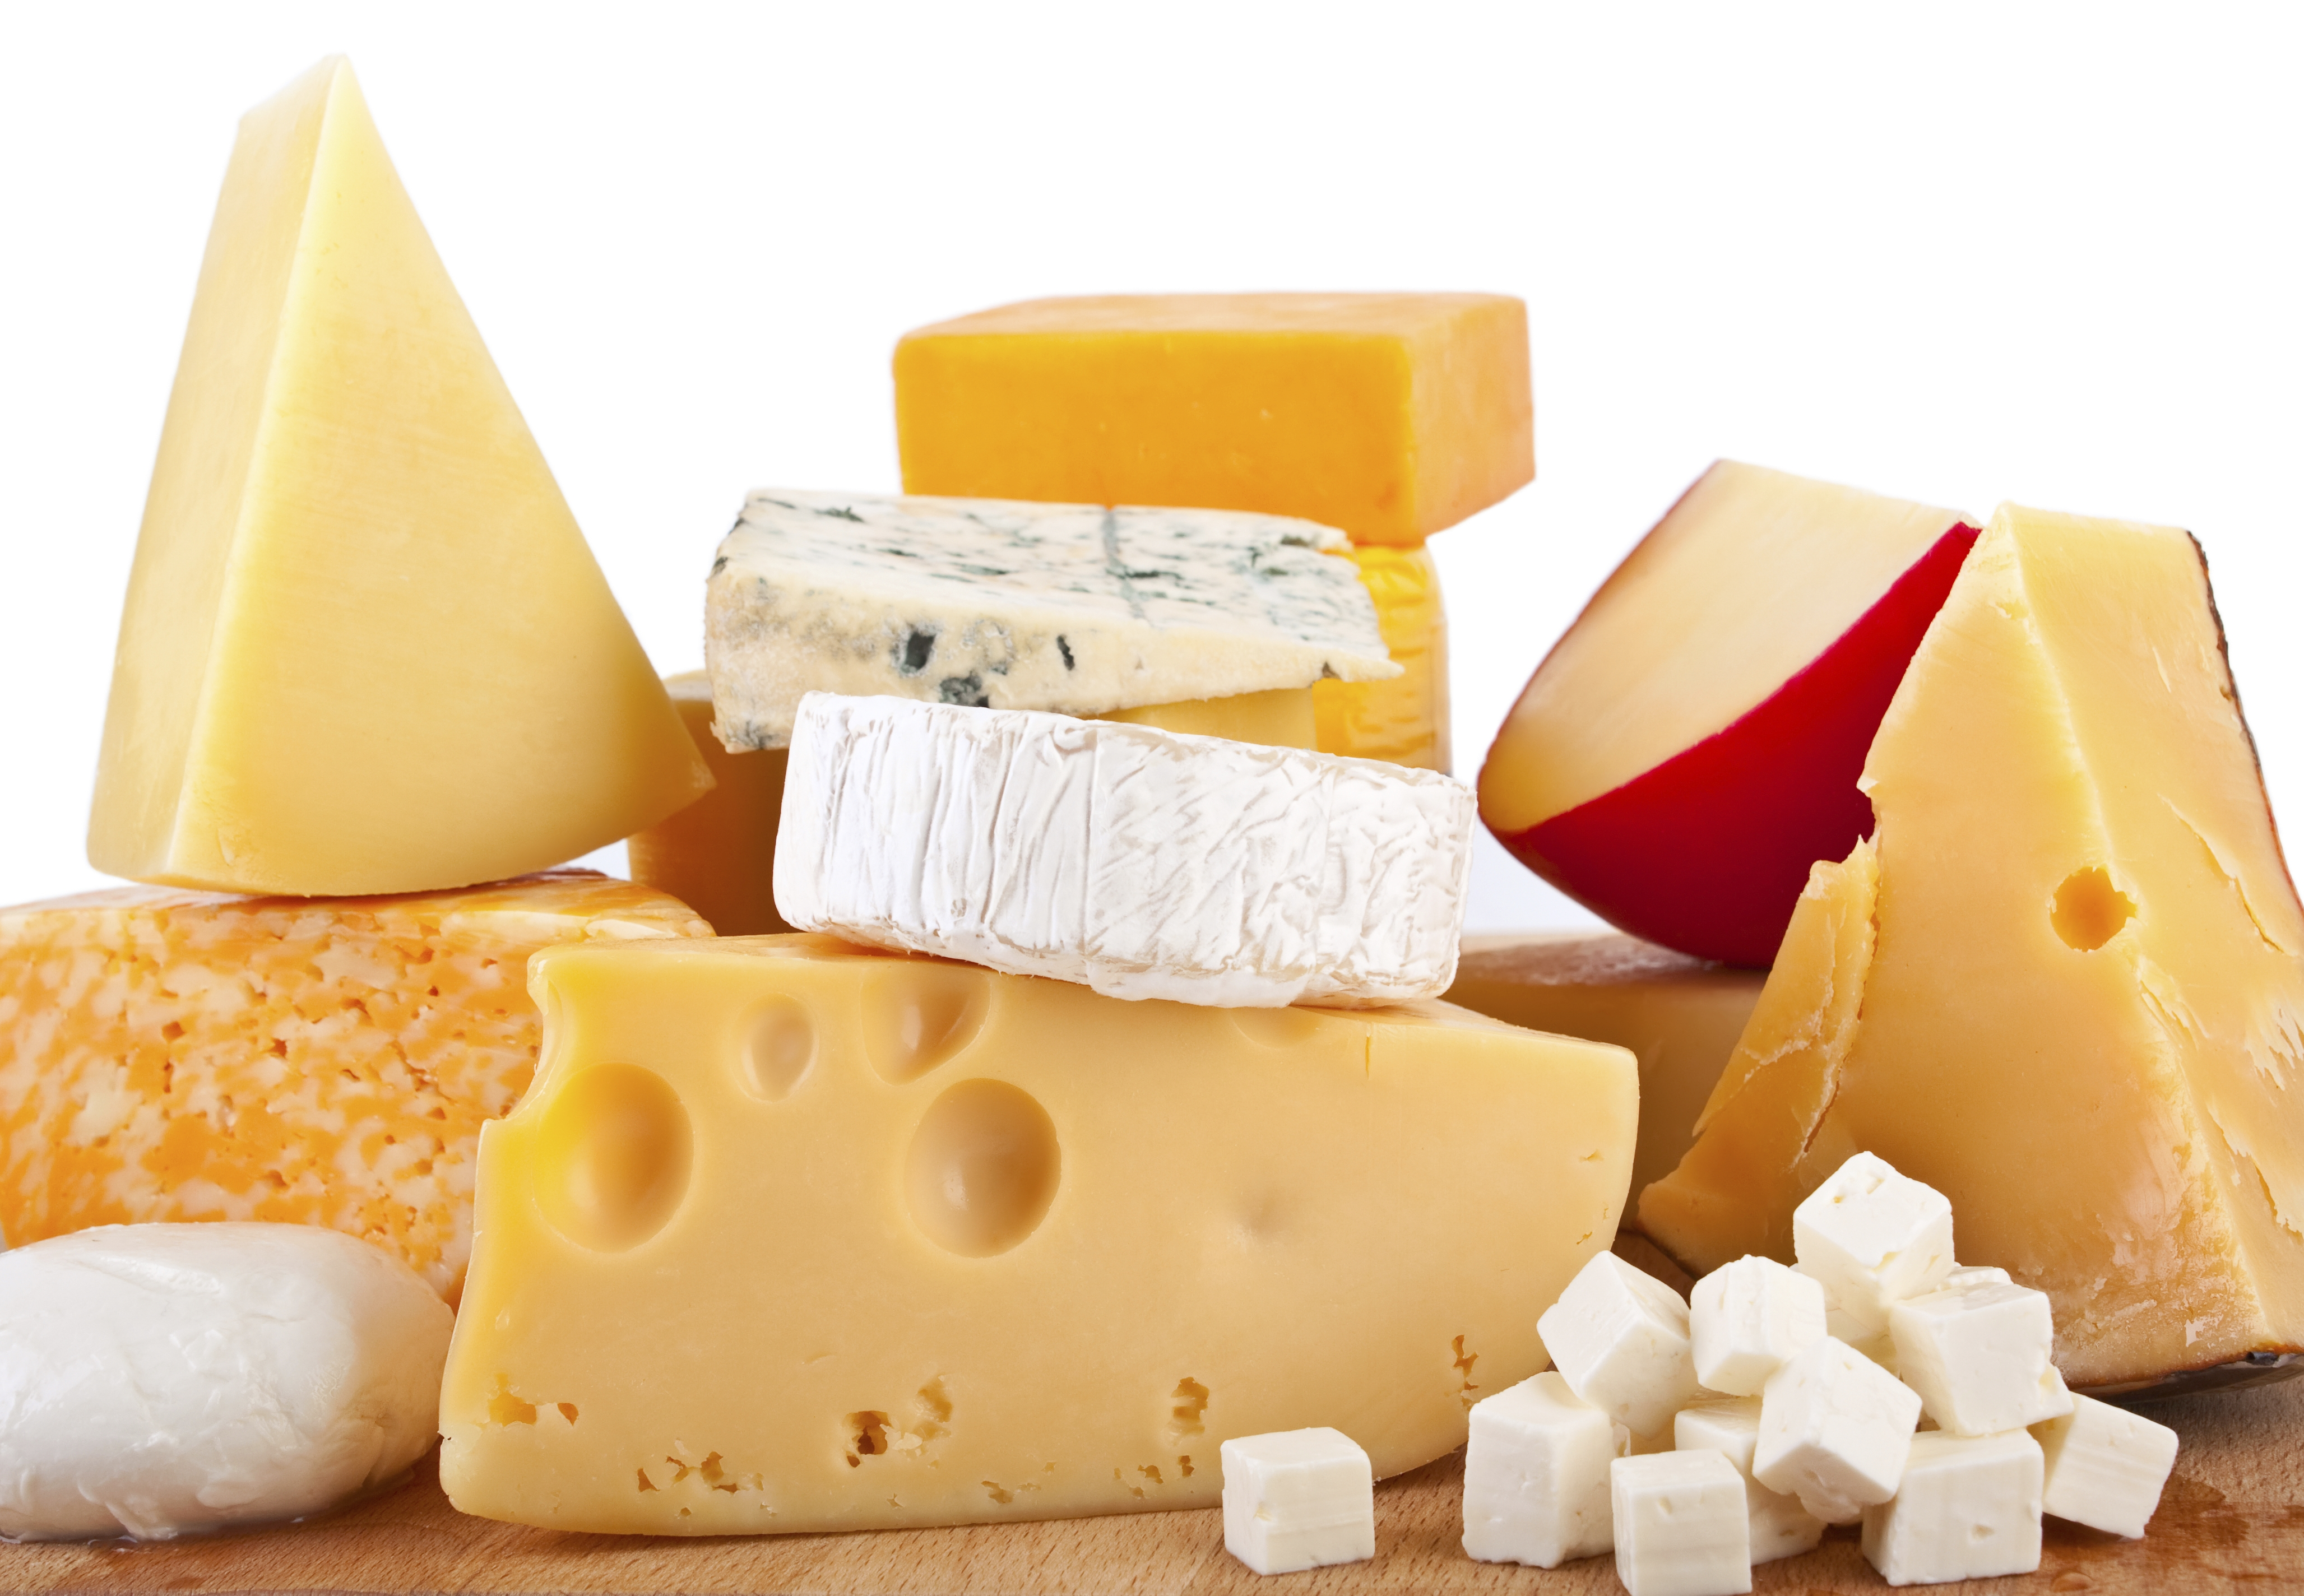 For a Healthy Heart, You May Have to Eat More Cheese